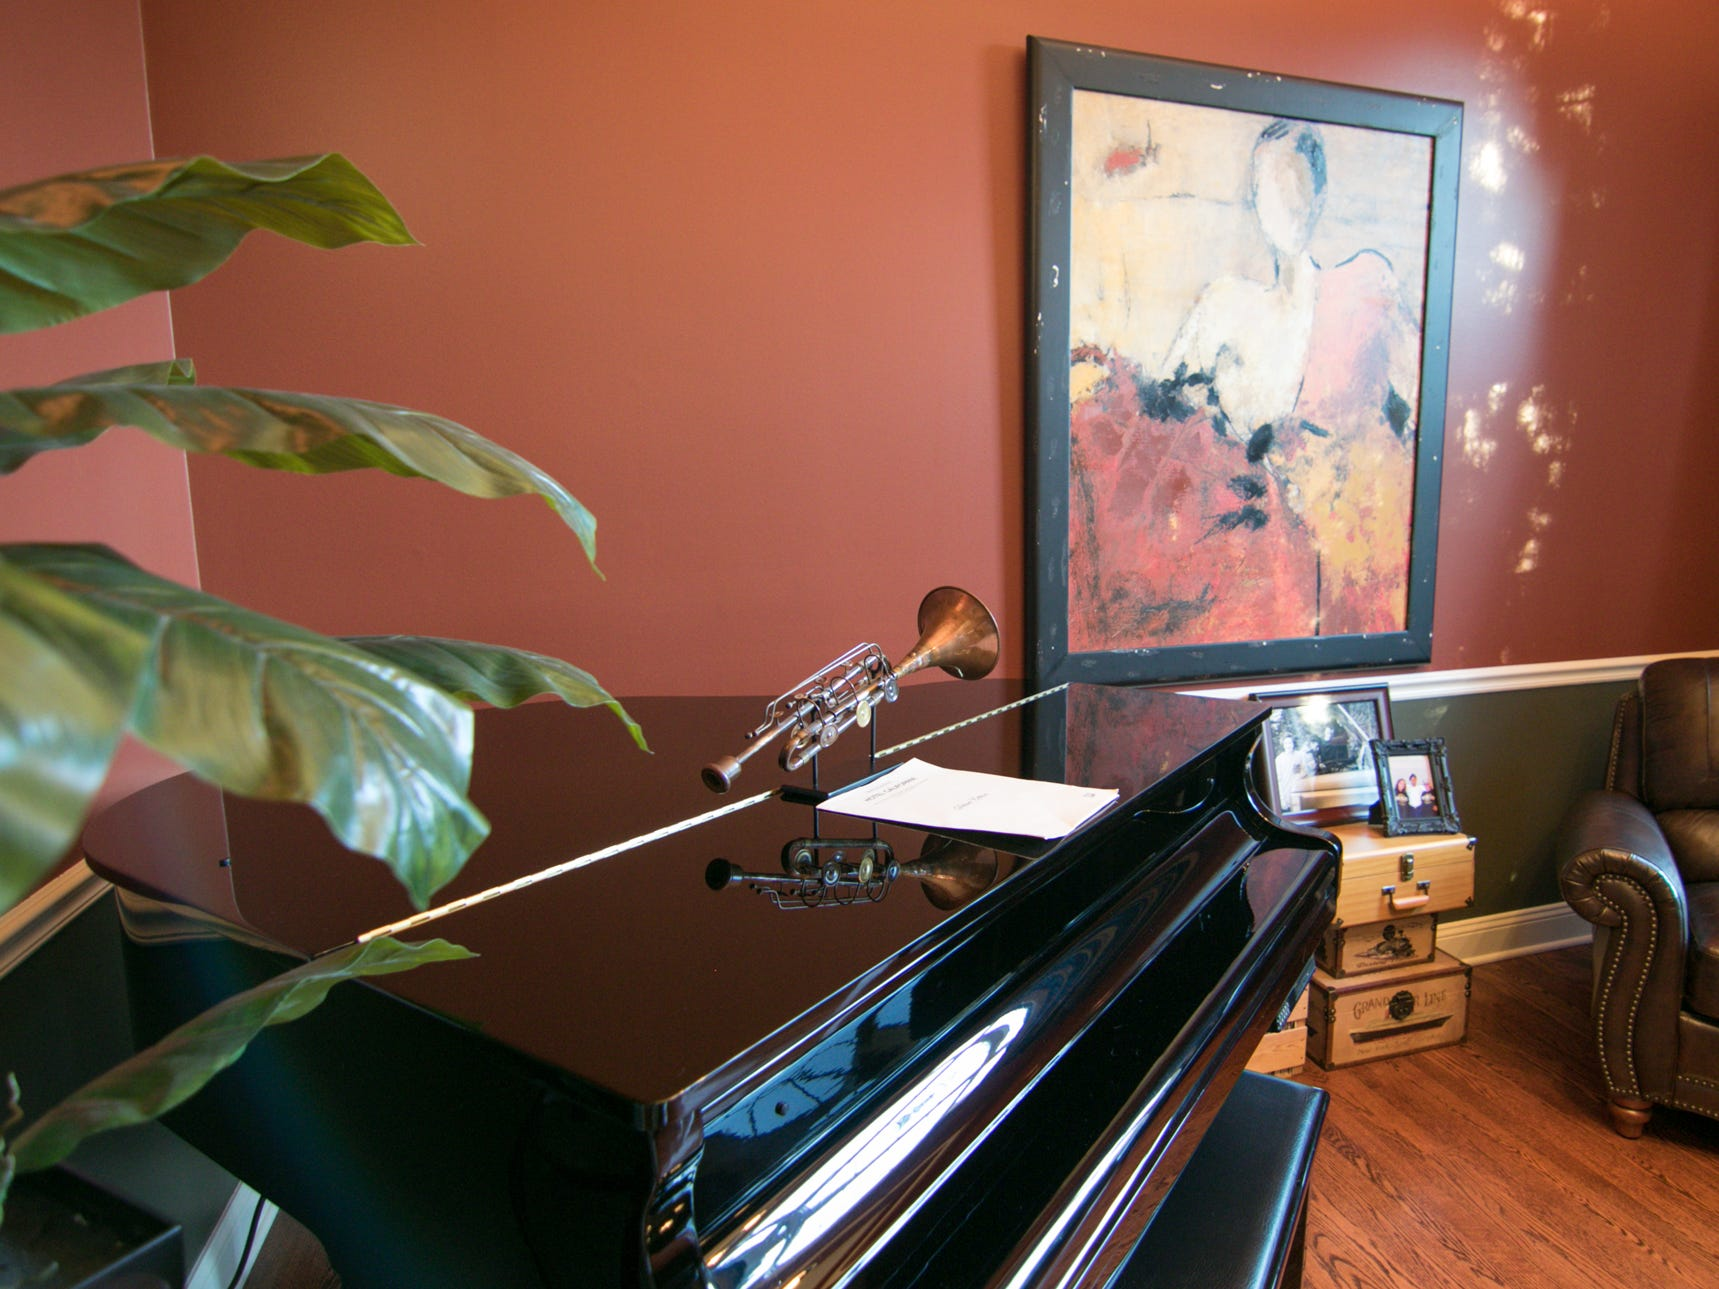 A sitting room in the Harris home shown Friday, Jan. 4, 2019 has a player piano.